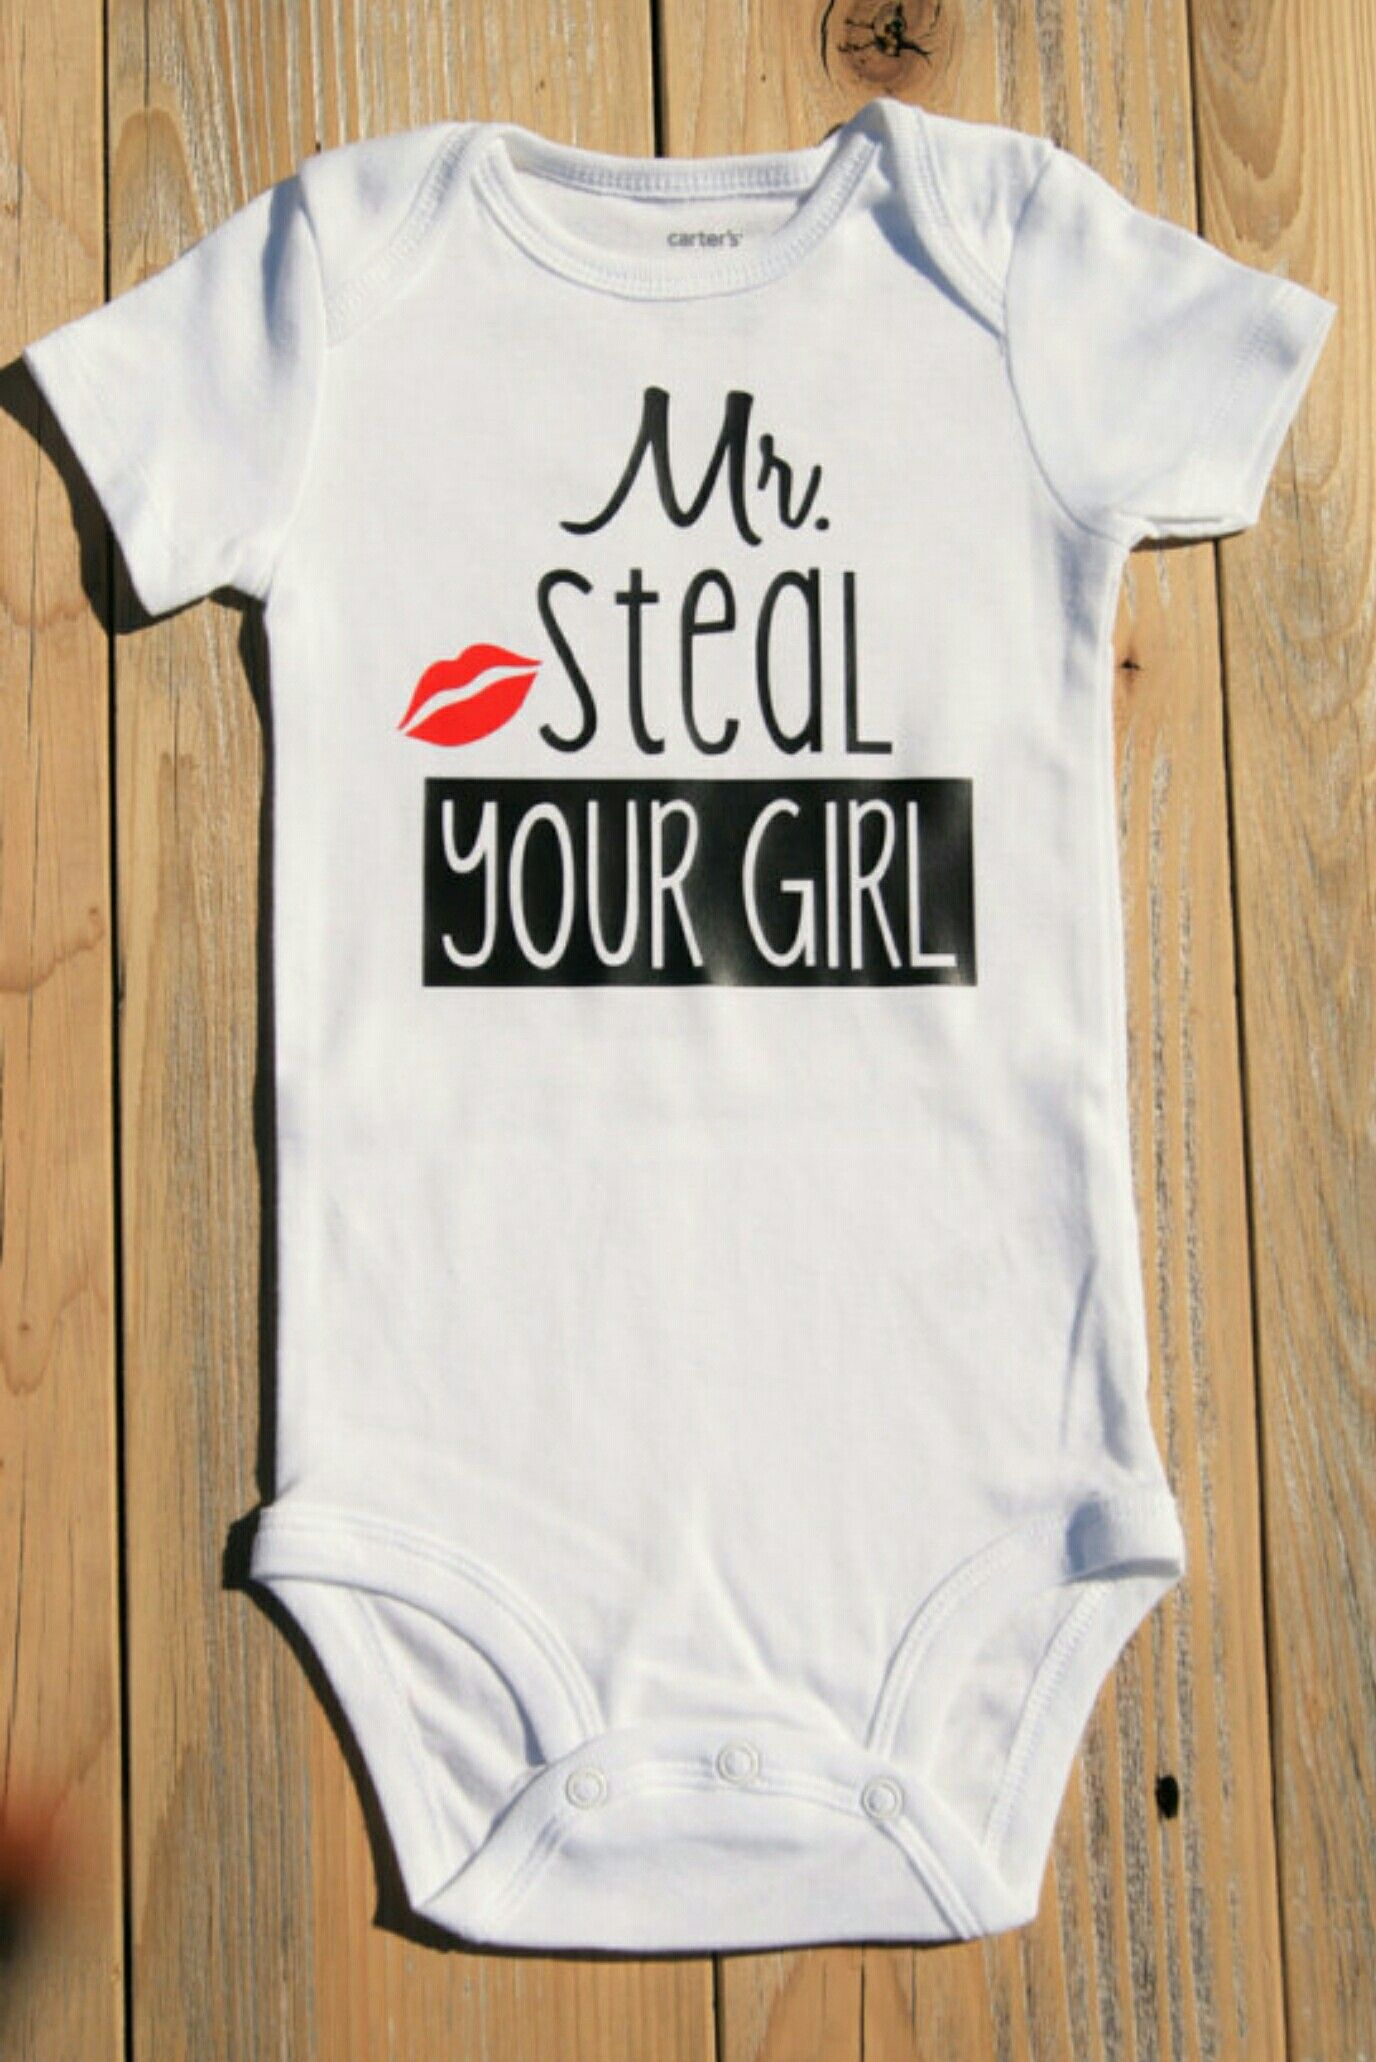 7859abbf3 Mr. Steal your girl! - Baby Boy Onesie - Funny Baby Onesie - Baby ...